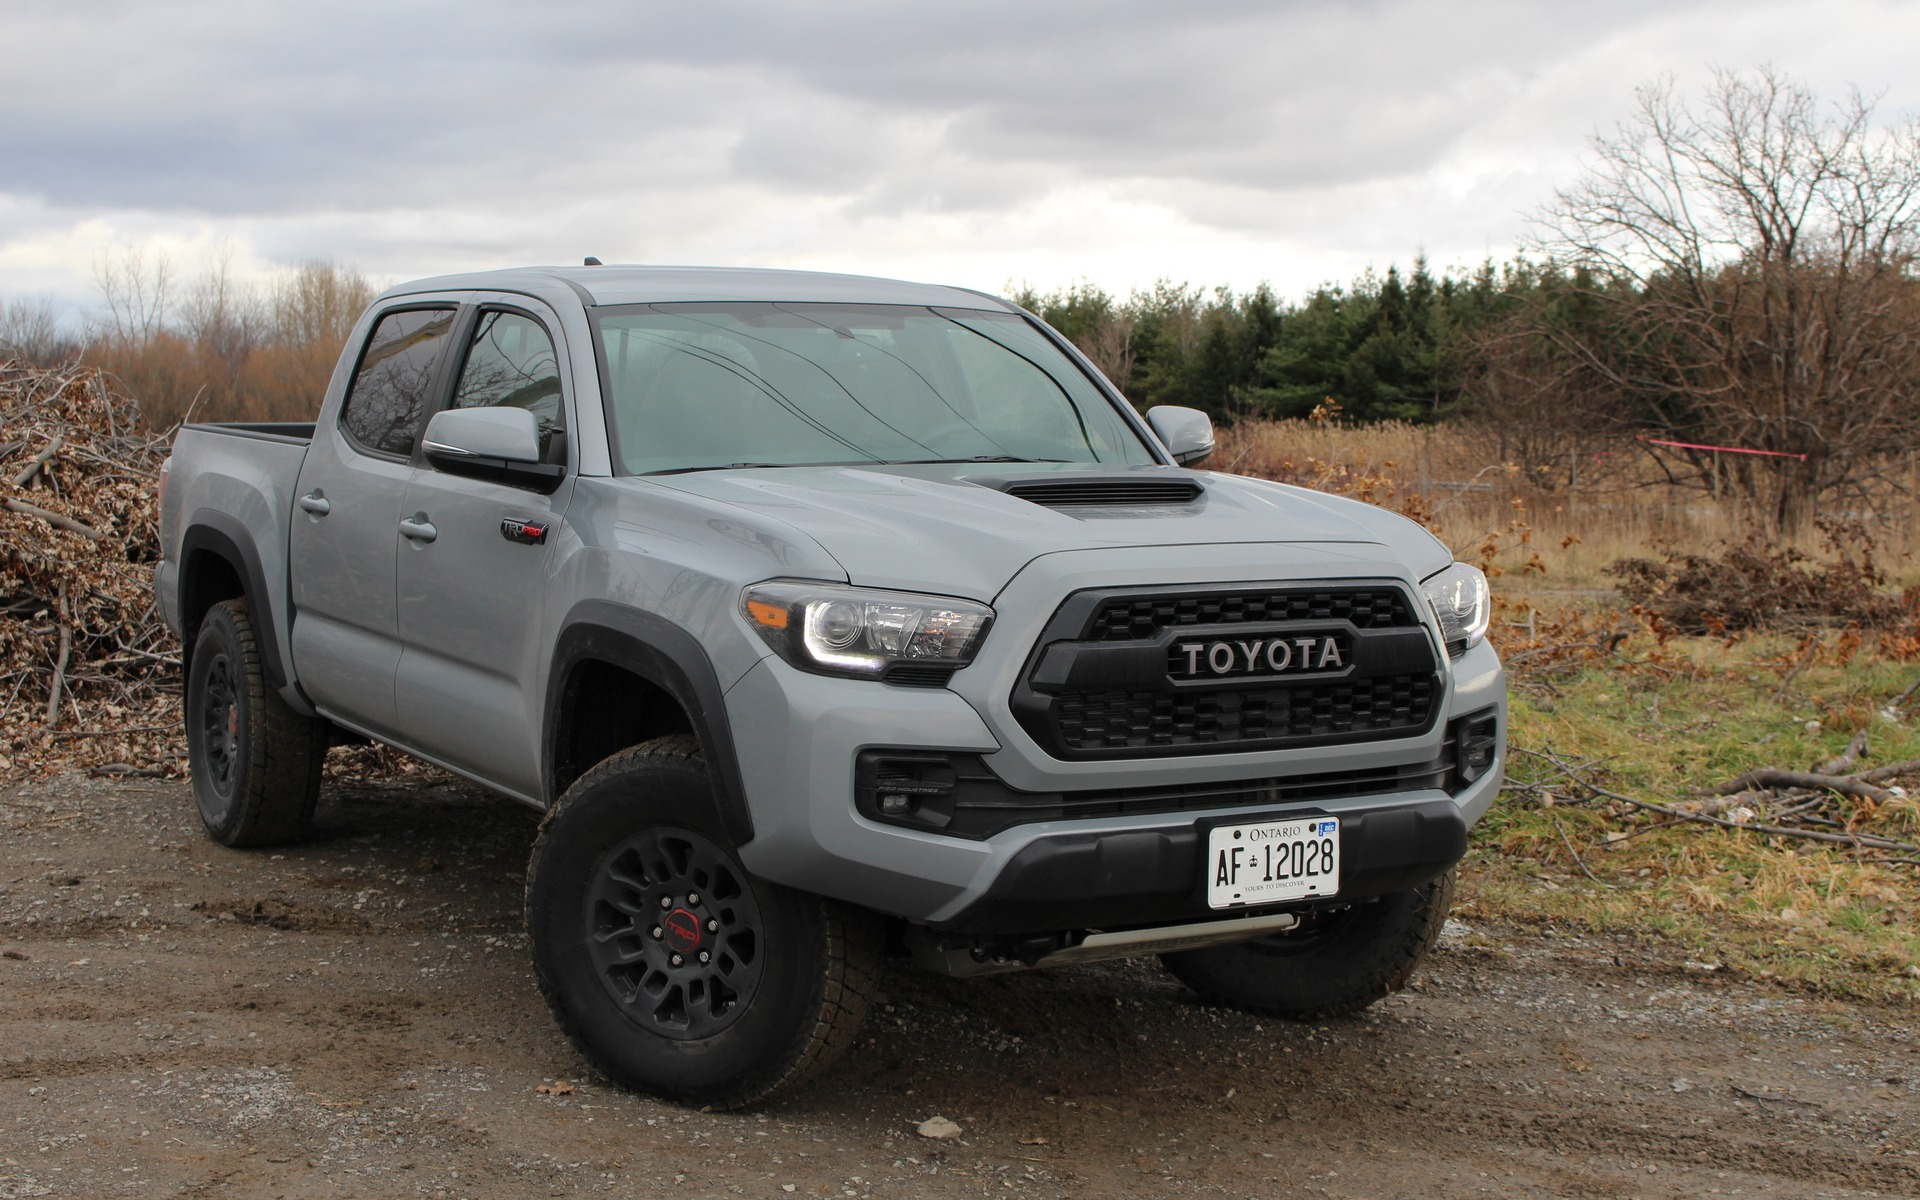 2017 Toyota Tacoma Trd Pro Where Do You Want To Go Today The Car Guide